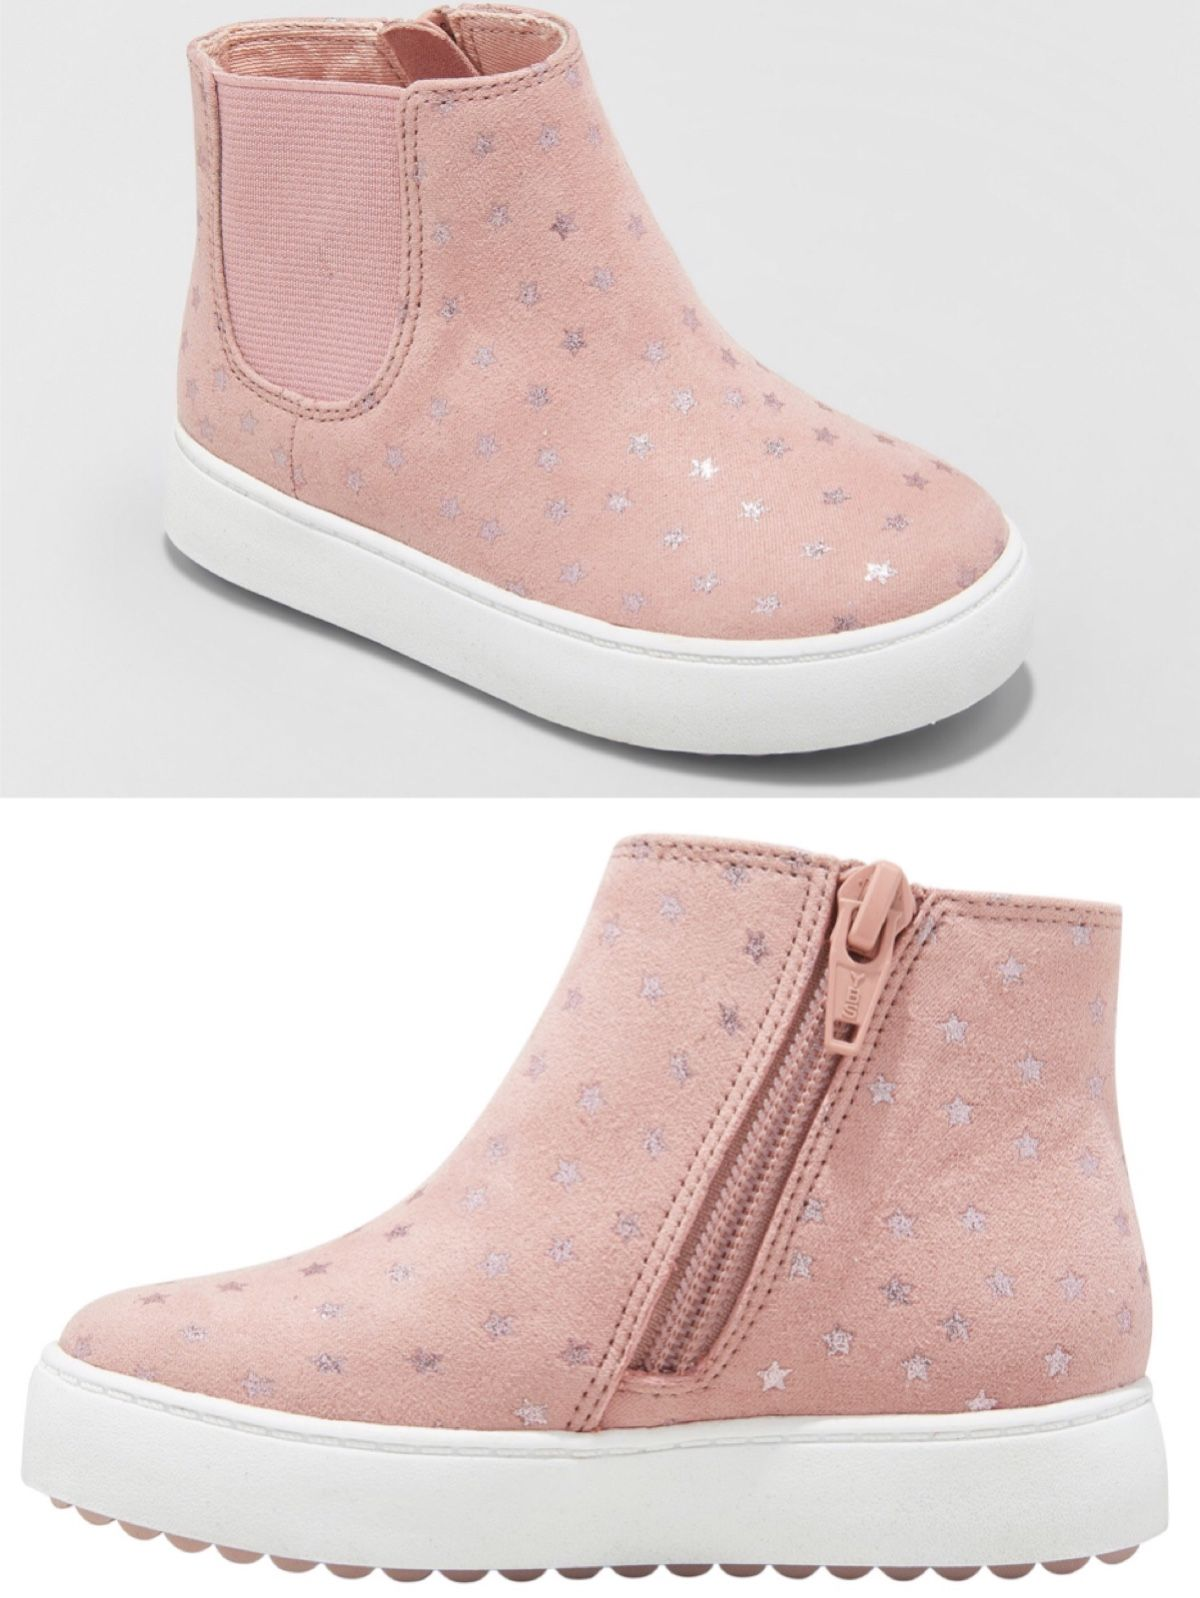 big sale c24dc e8654  sneakers  PINK SHOES FOR GIRLS  low priced but looks good